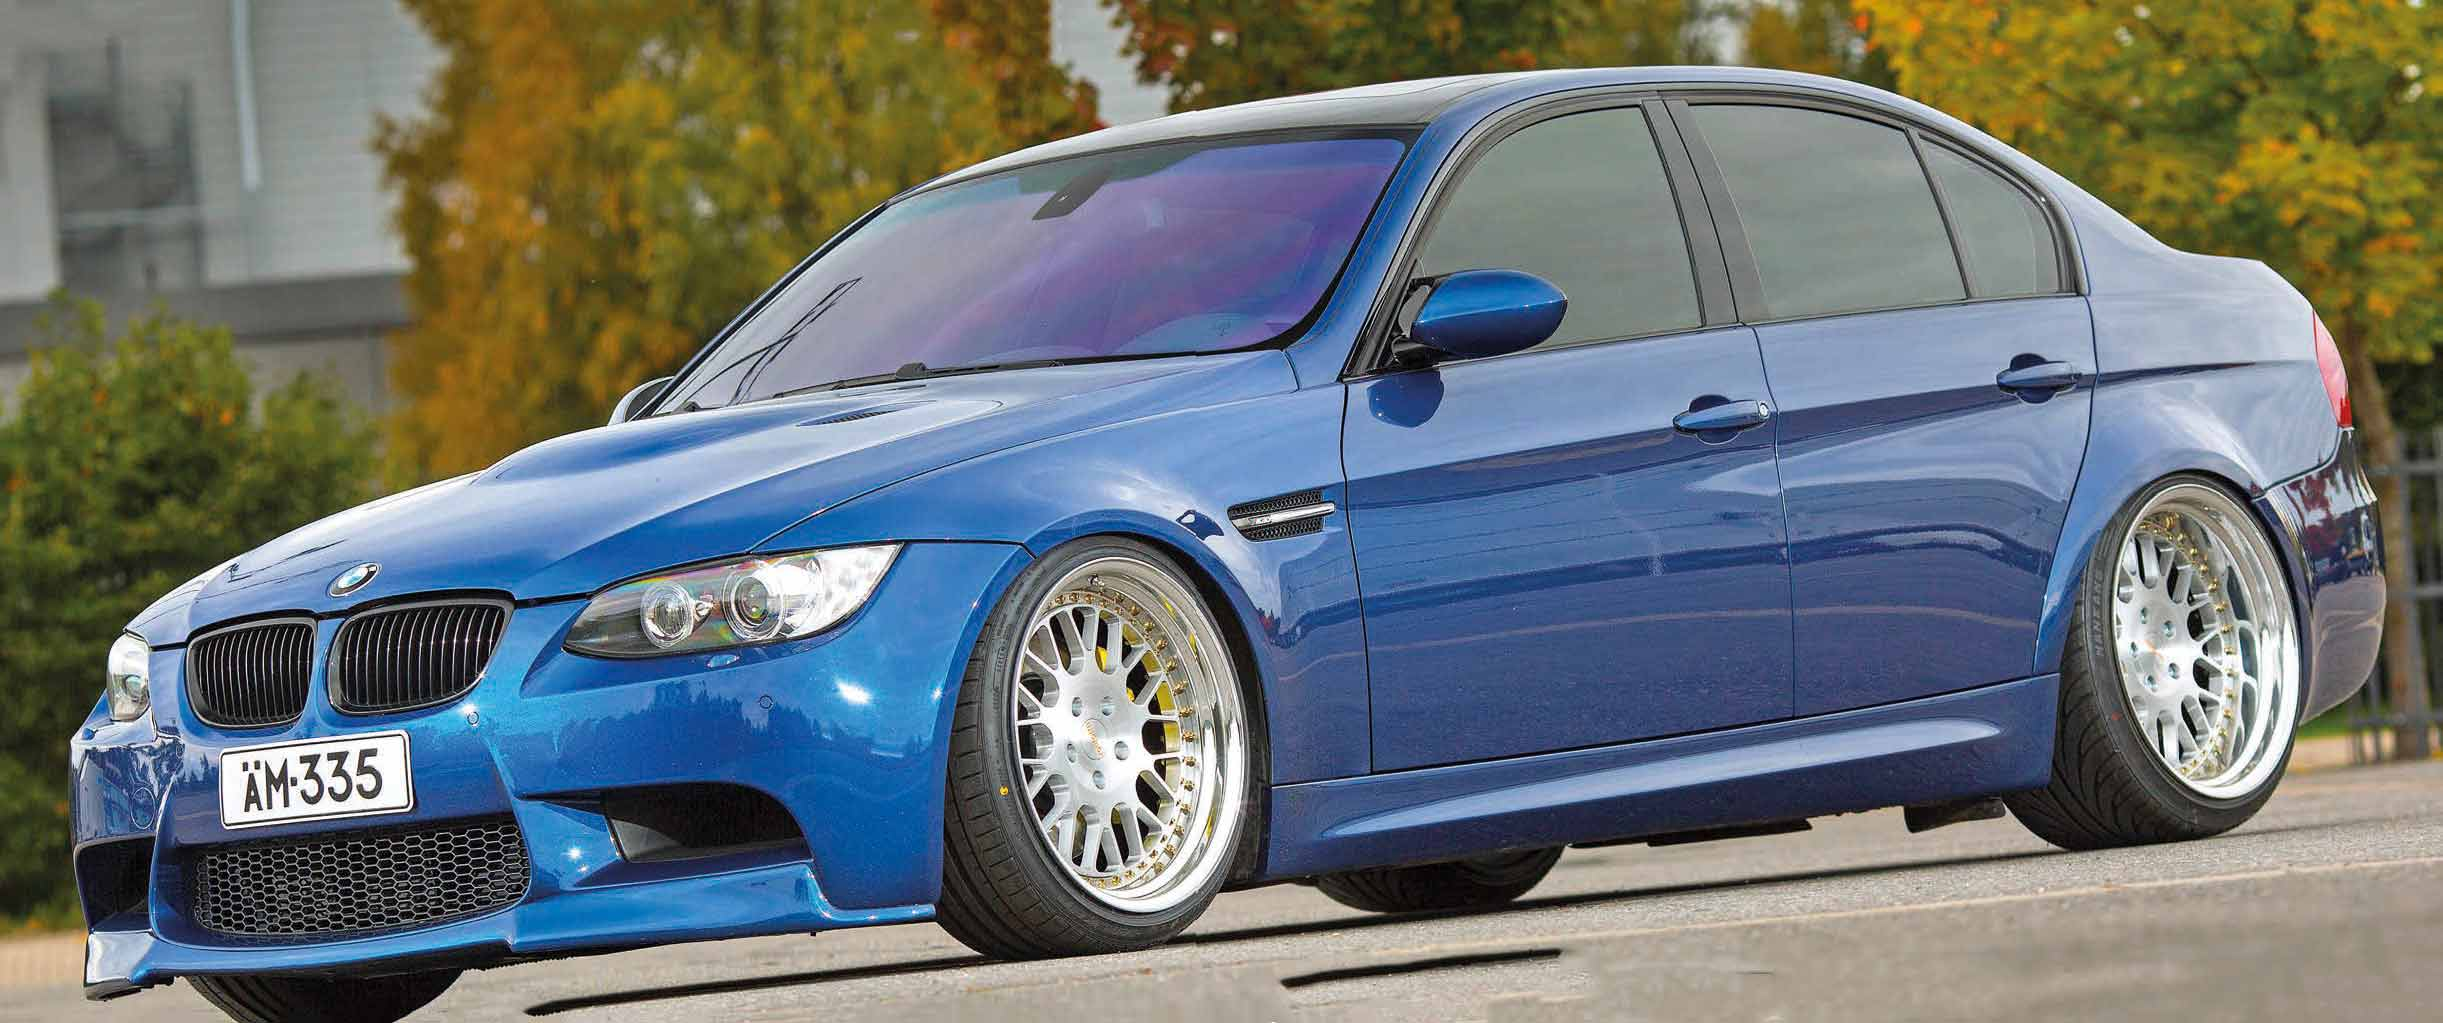 410hp Tuned M3 Look Bmw 335d E90 Drive My Blogs Drive